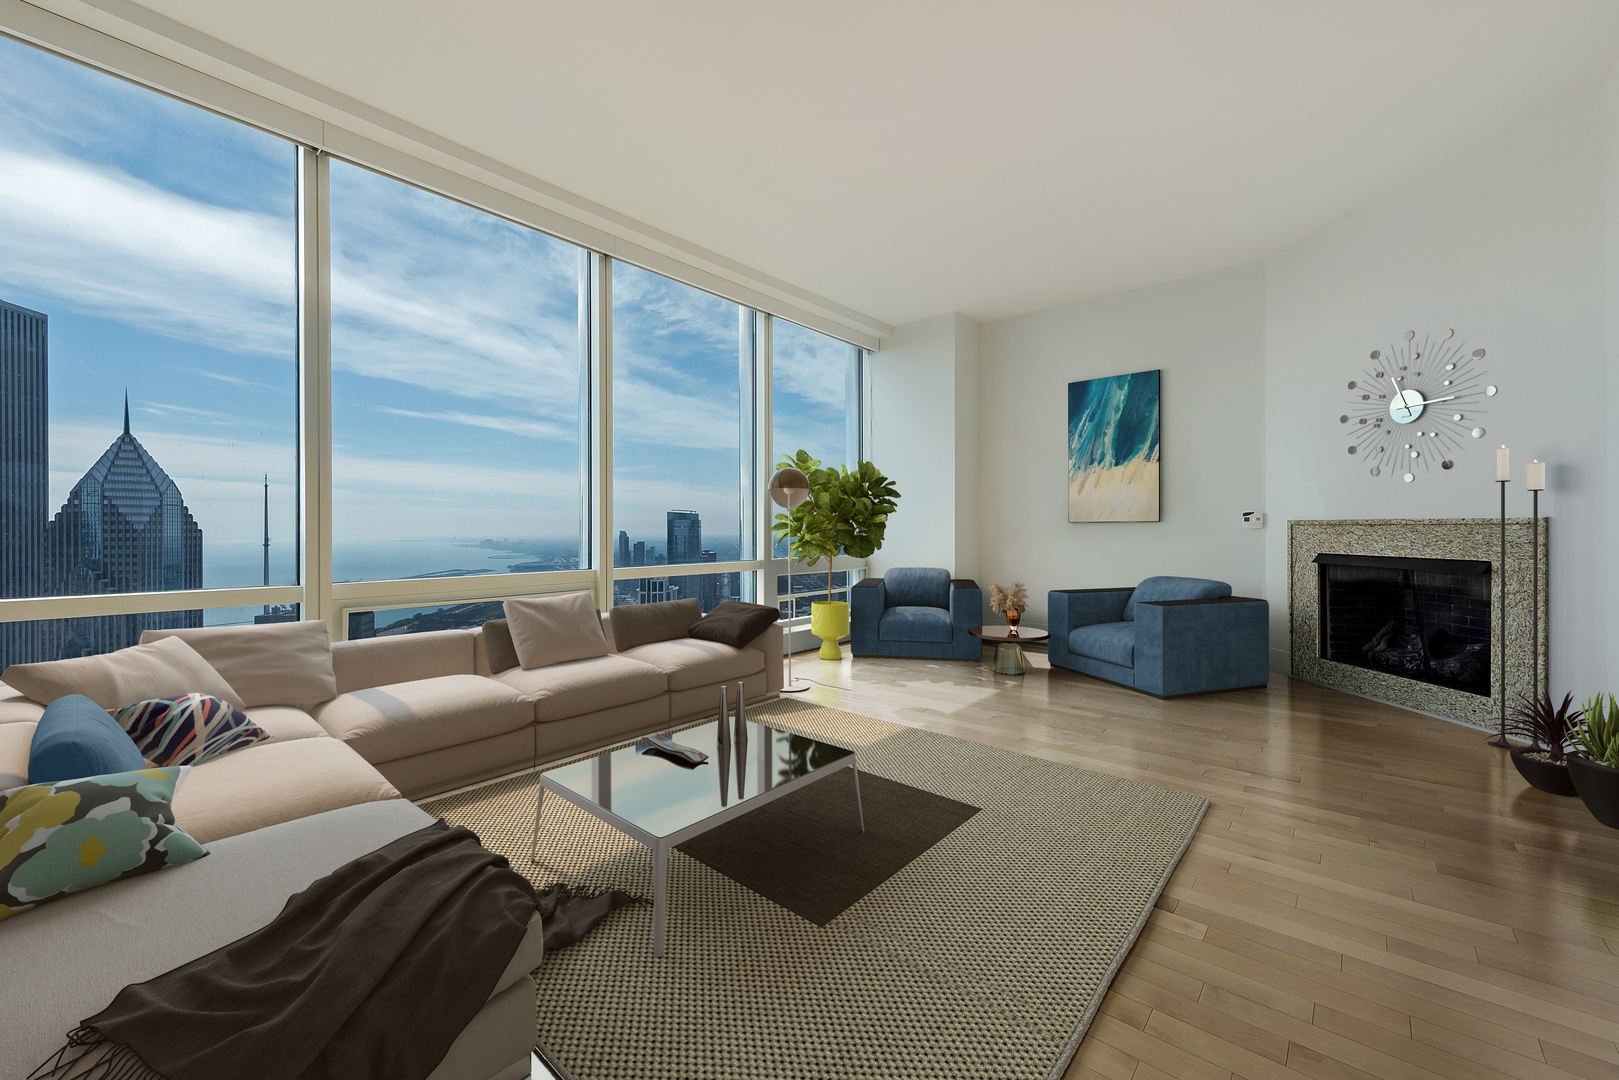 Condos For Sale in Trump Tower Chicago - 401 N. Wabash, Chicago ...